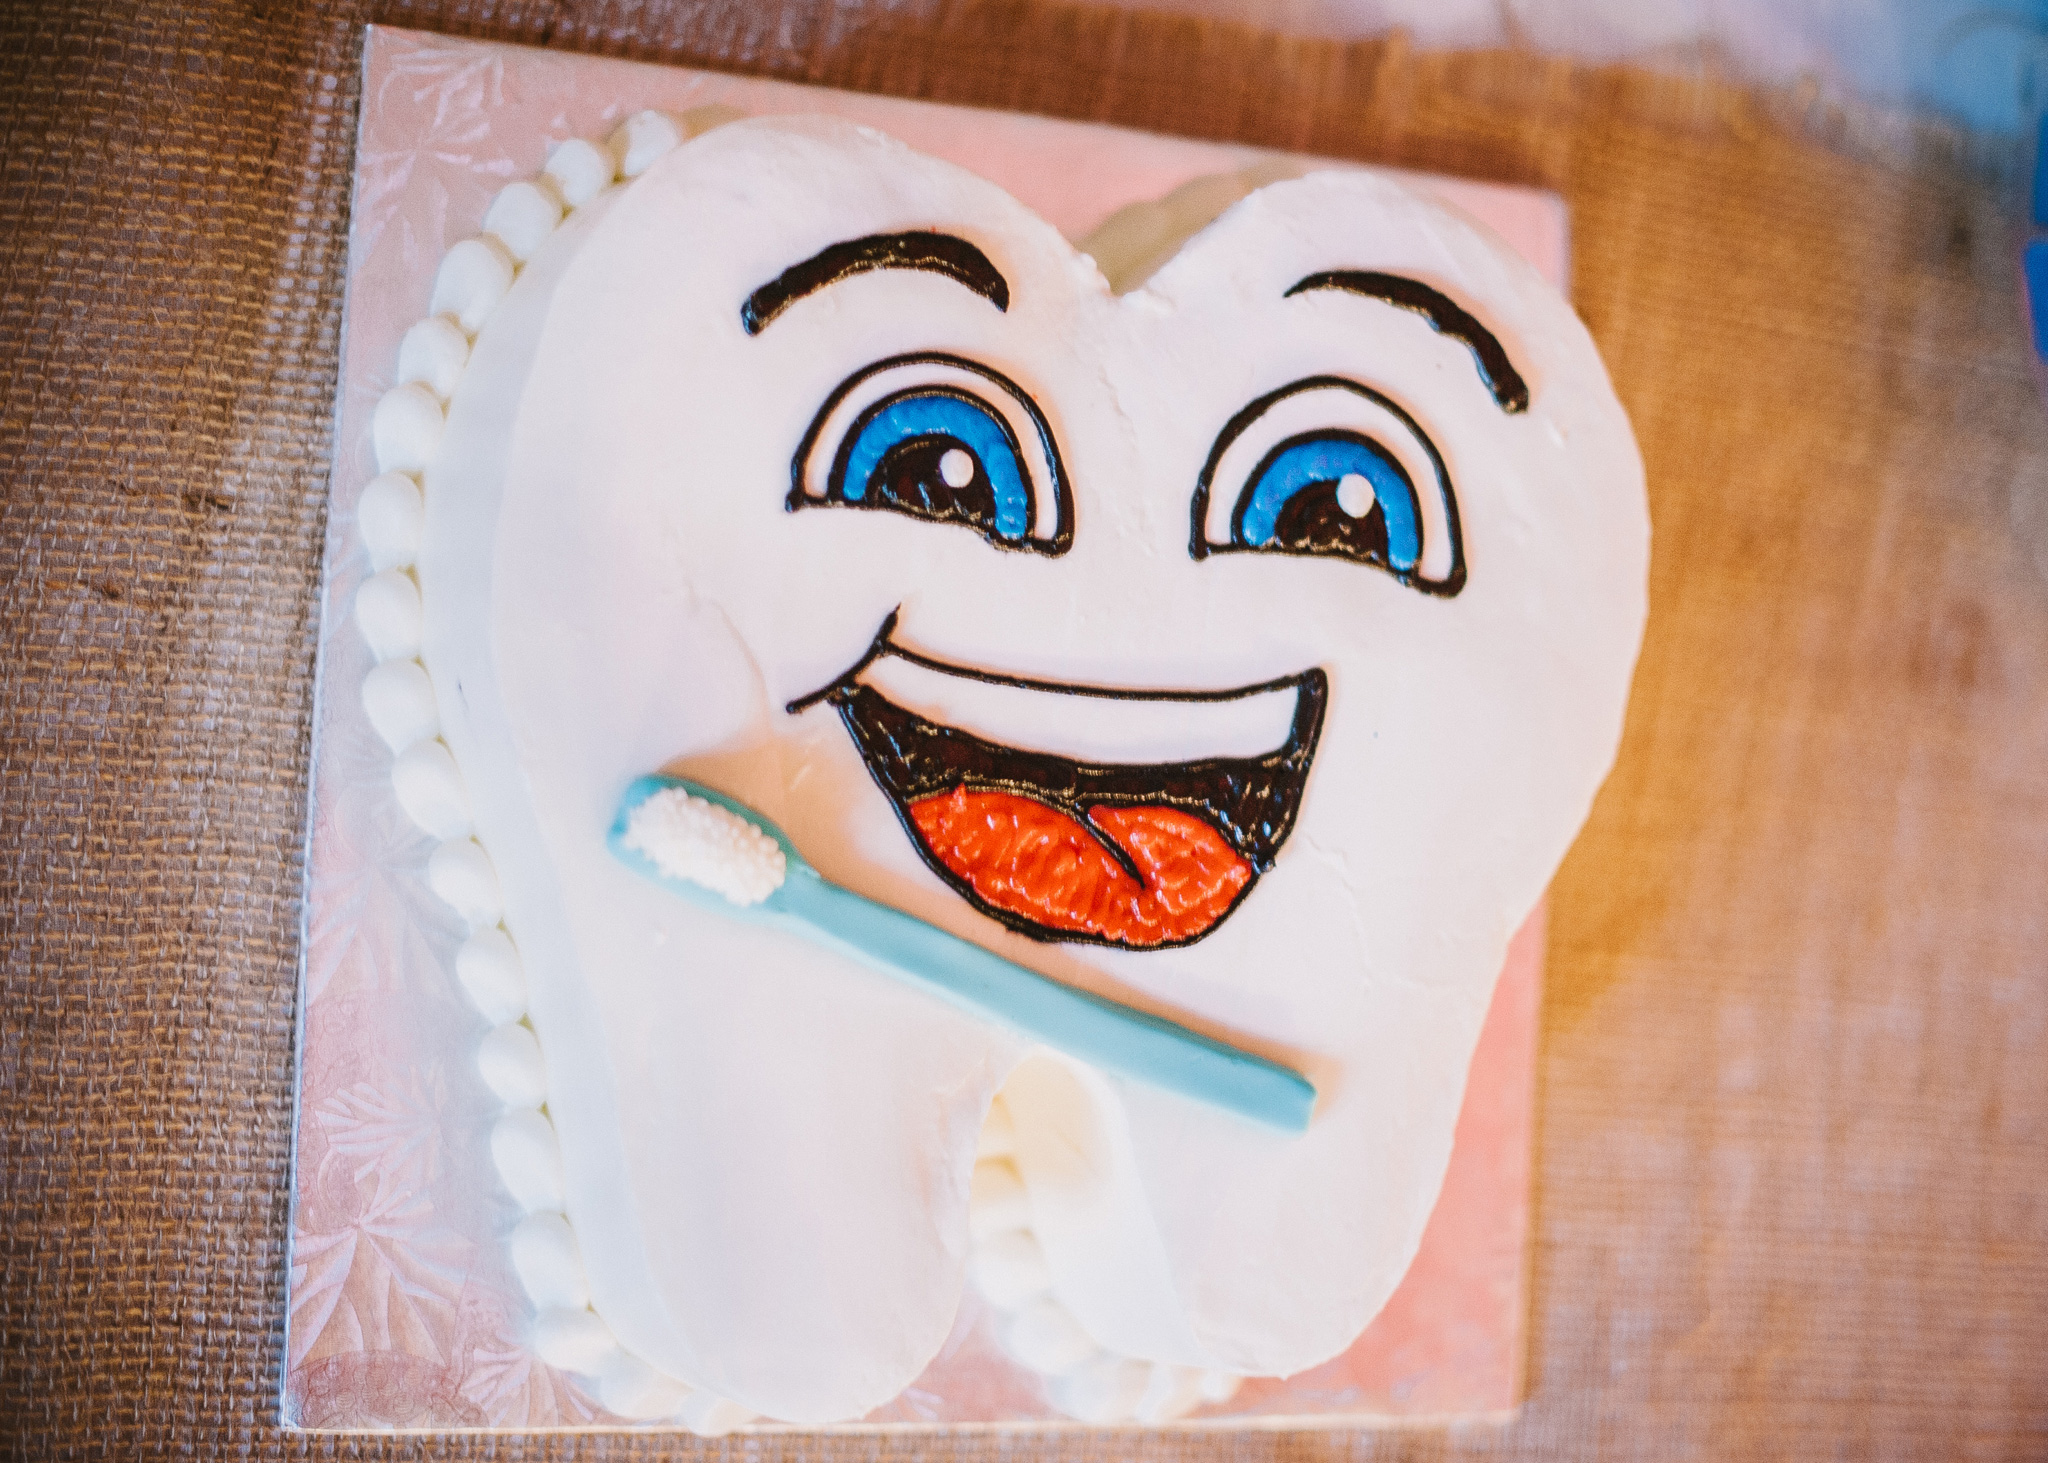 BnBauman Photography , from  Chelsea + Logan 's wedding. Logan was in dental school at the time of his wedding, so this precious tooth groom's cake was a must! He and his bride also gave toothbrushes and floss as favors.